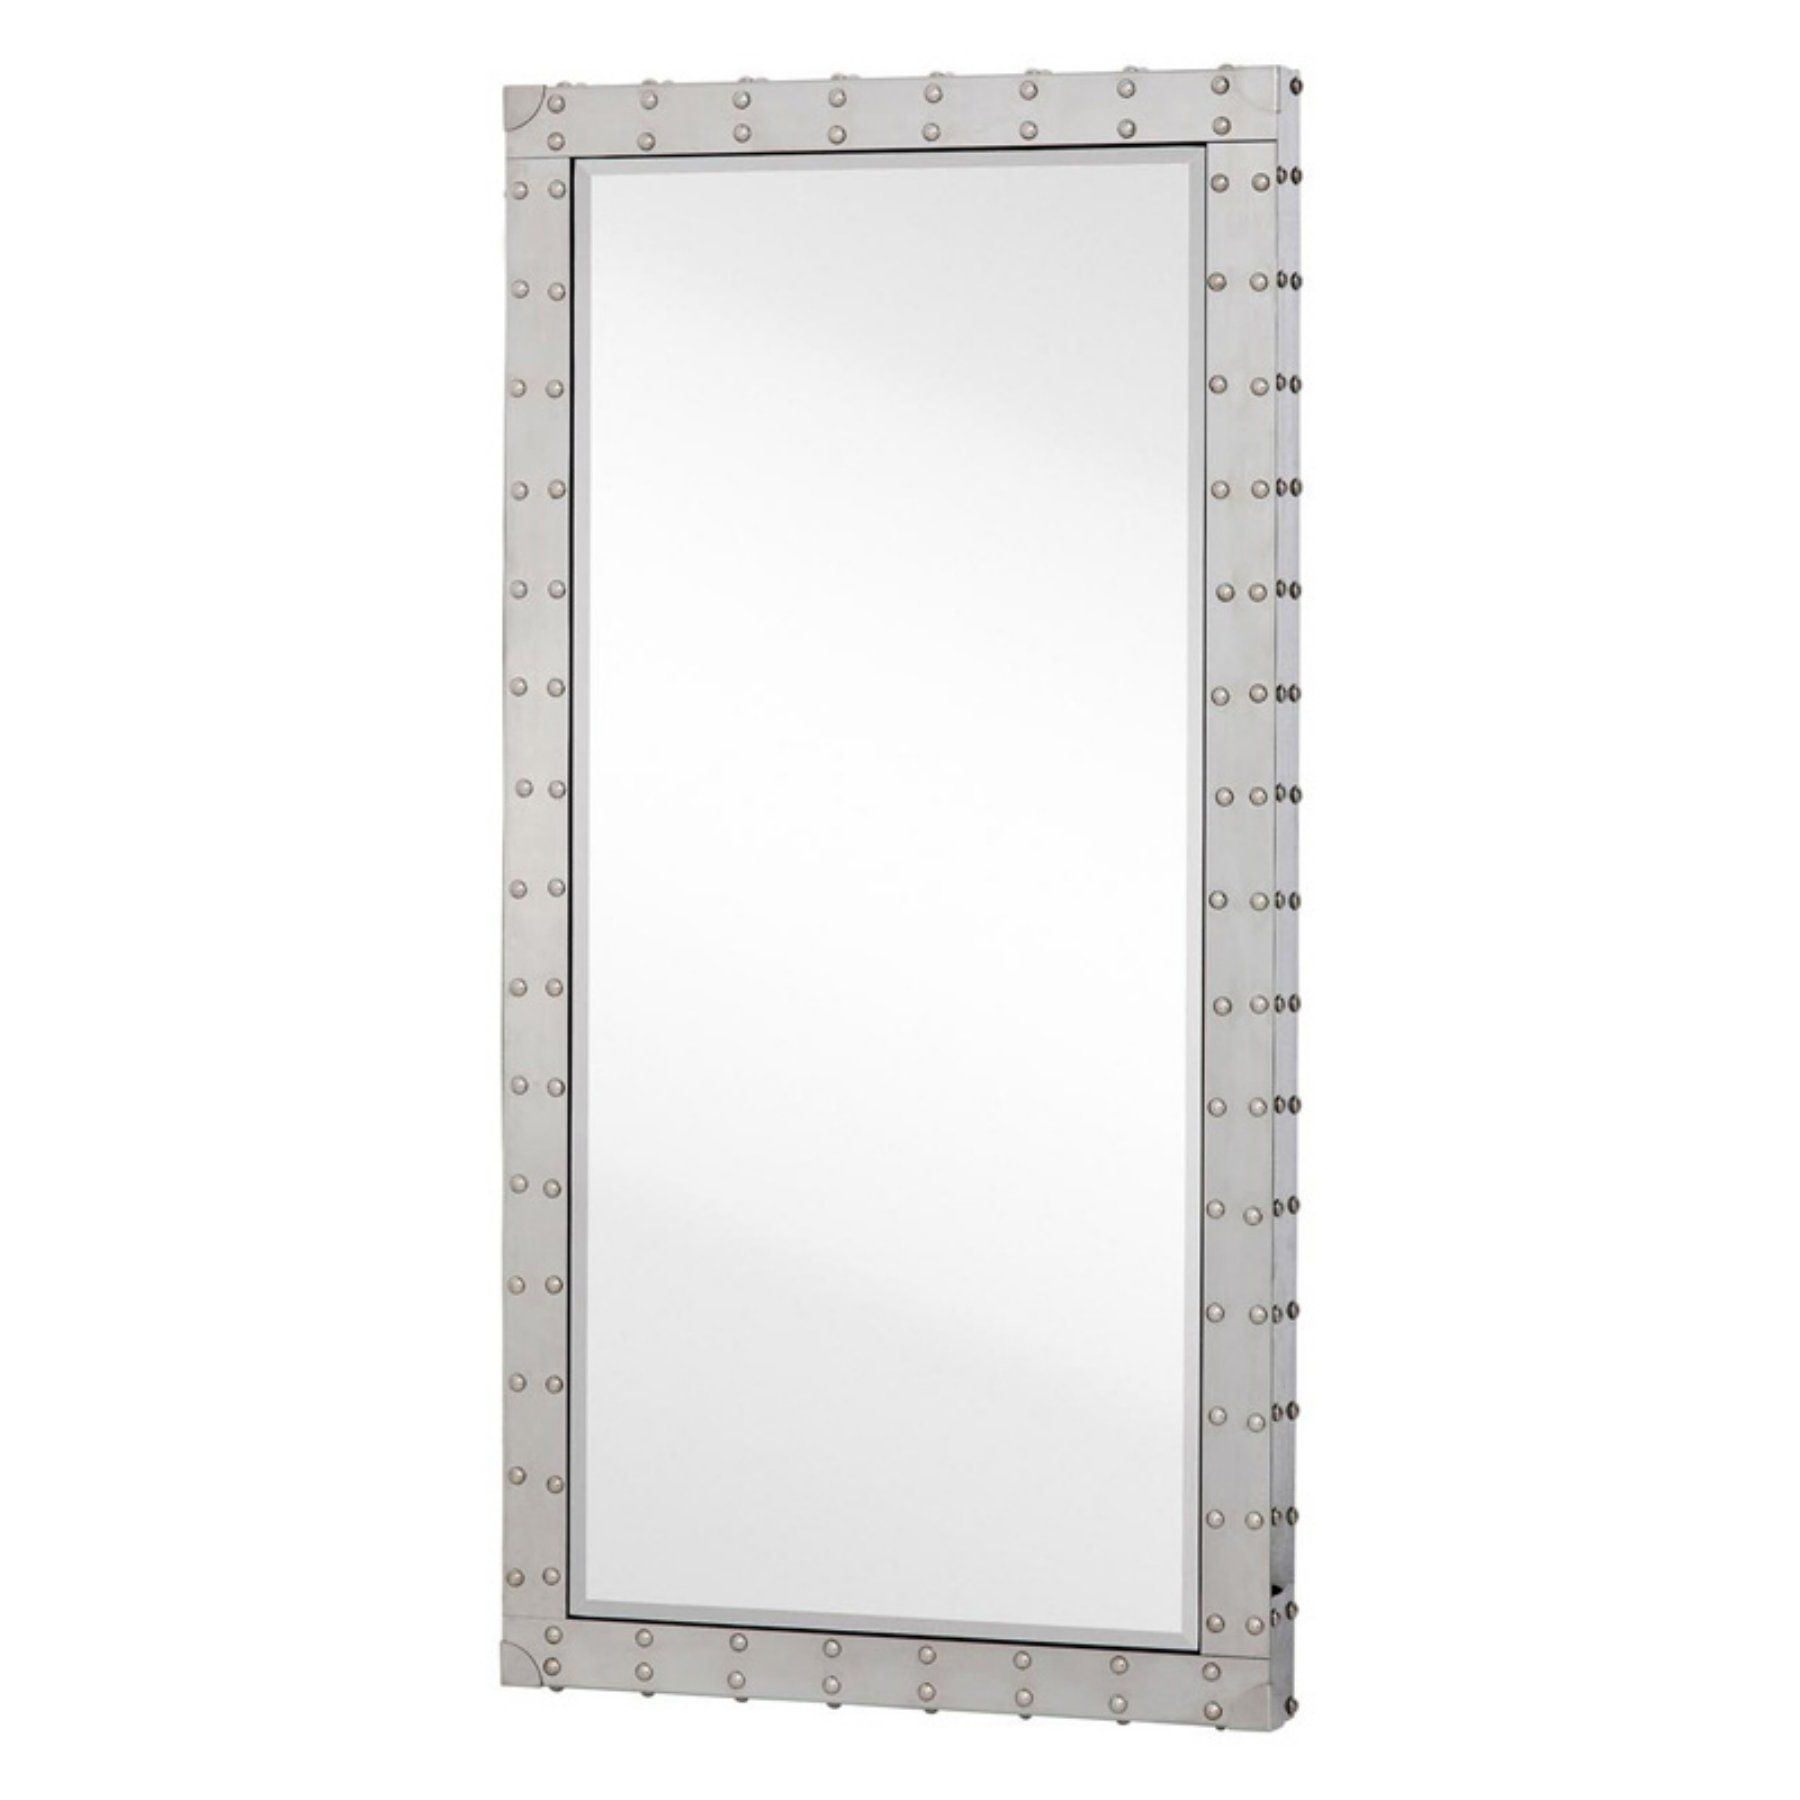 Modern & Contemporary Beveled Wall Mirrors Inside Current Majestic Modern Beveled Wall Mirror – 2328 B (View 10 of 20)